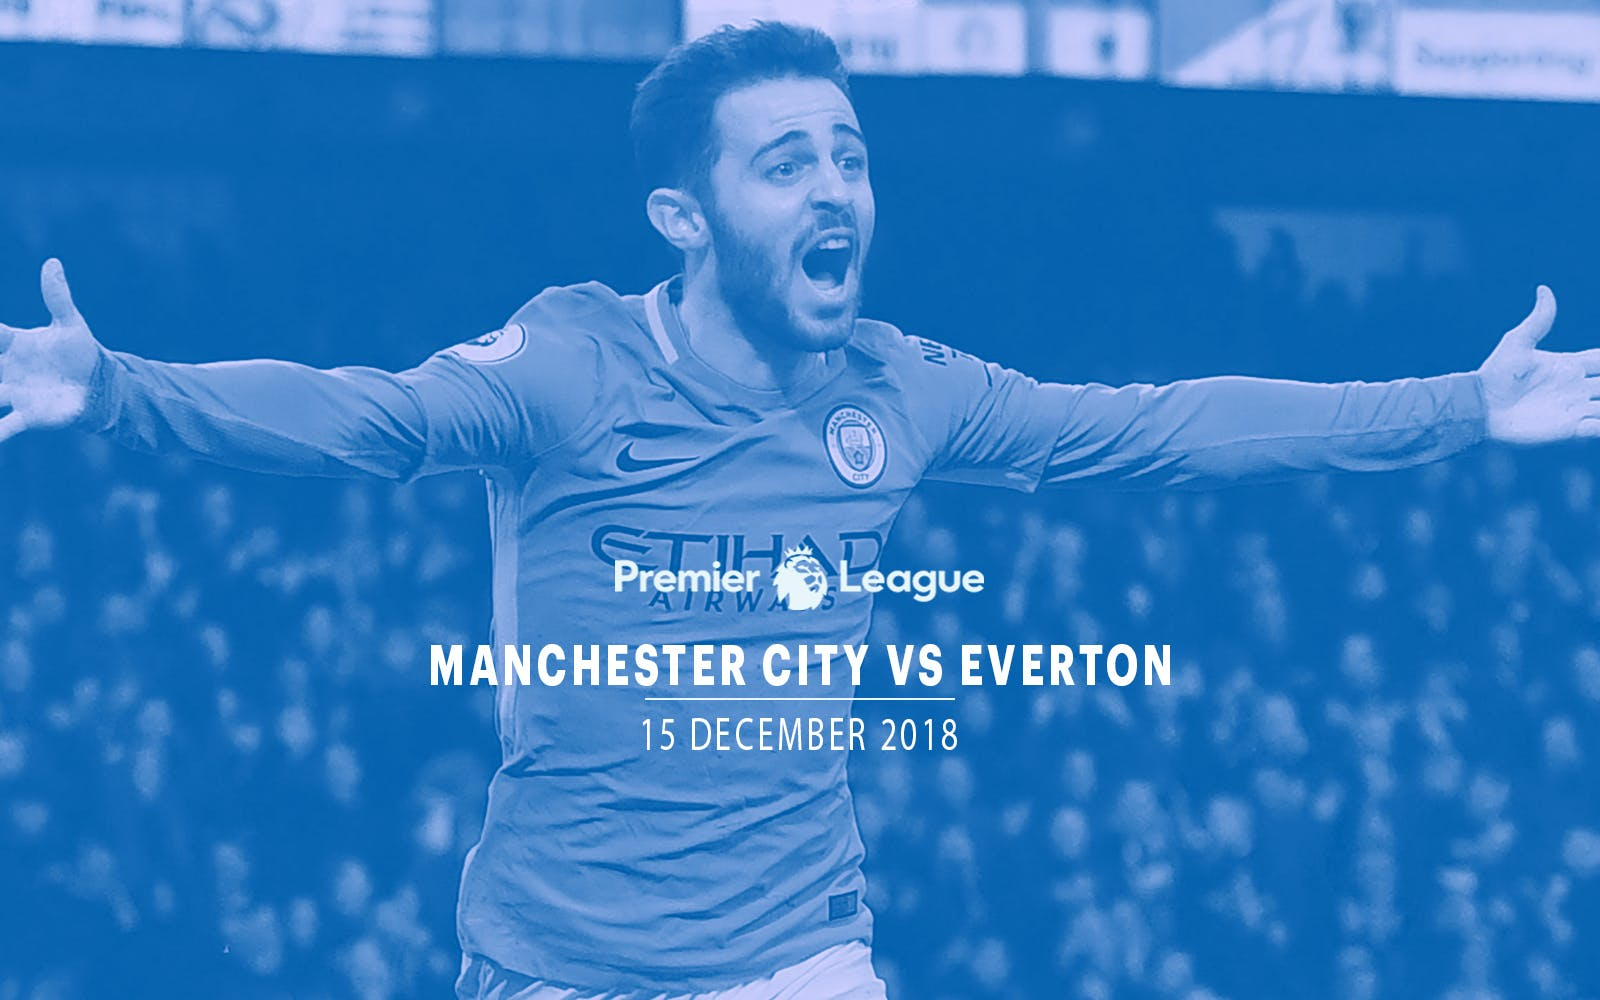 Manchester City vs Everton - 15th Dec'18